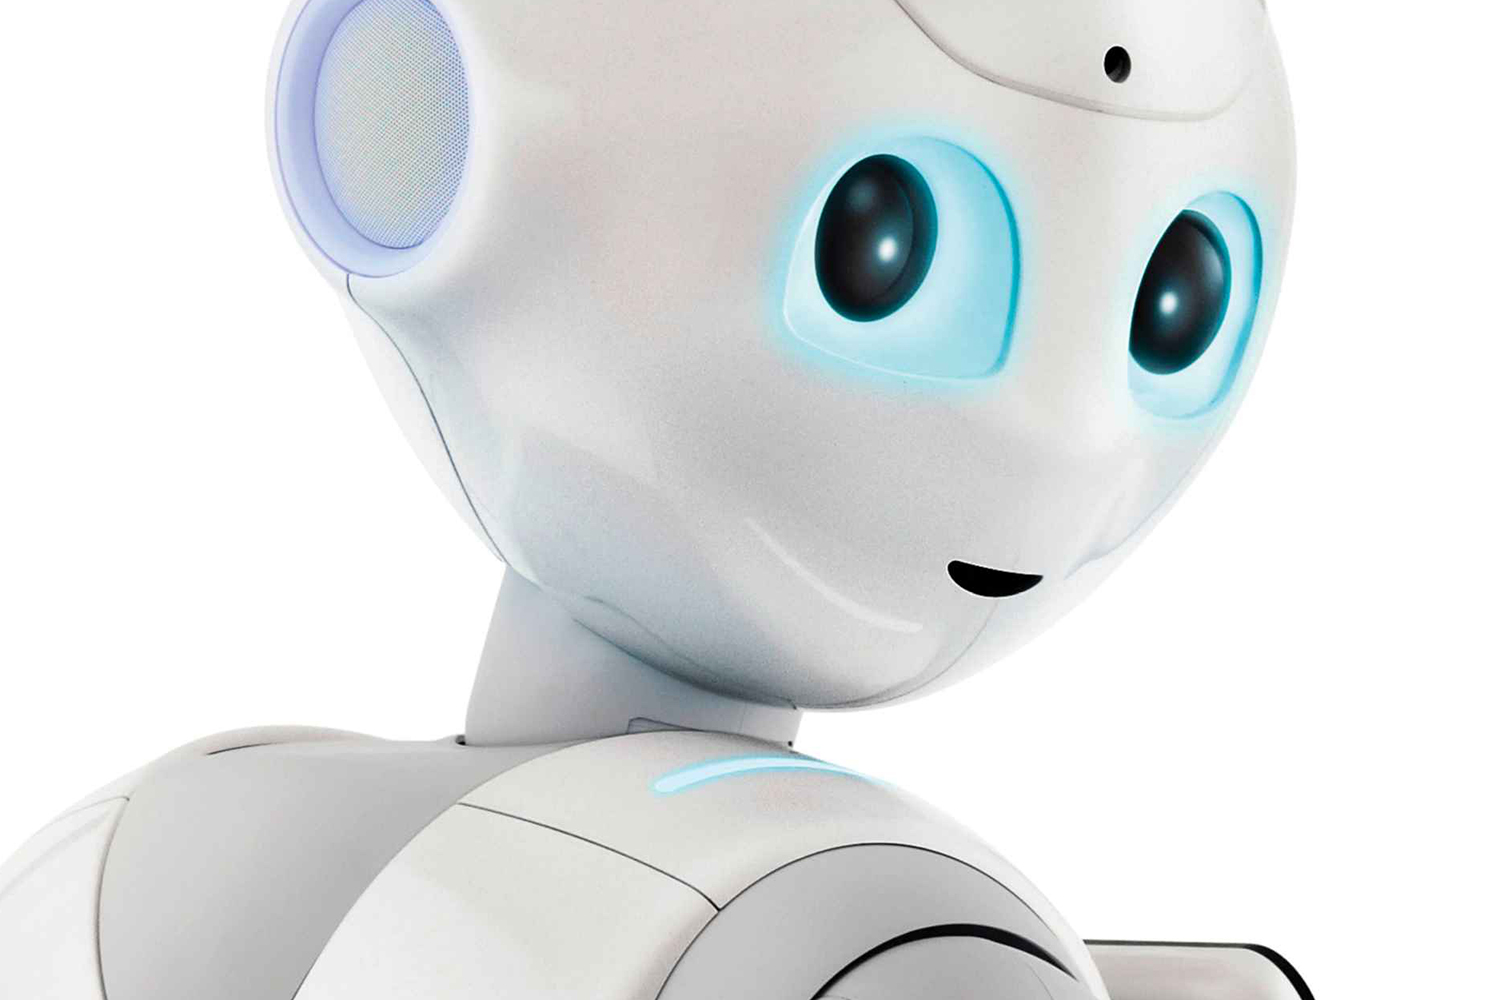 Minimalist home rules - No Sex Of Any Kind For Pepper The Robot Say Creators